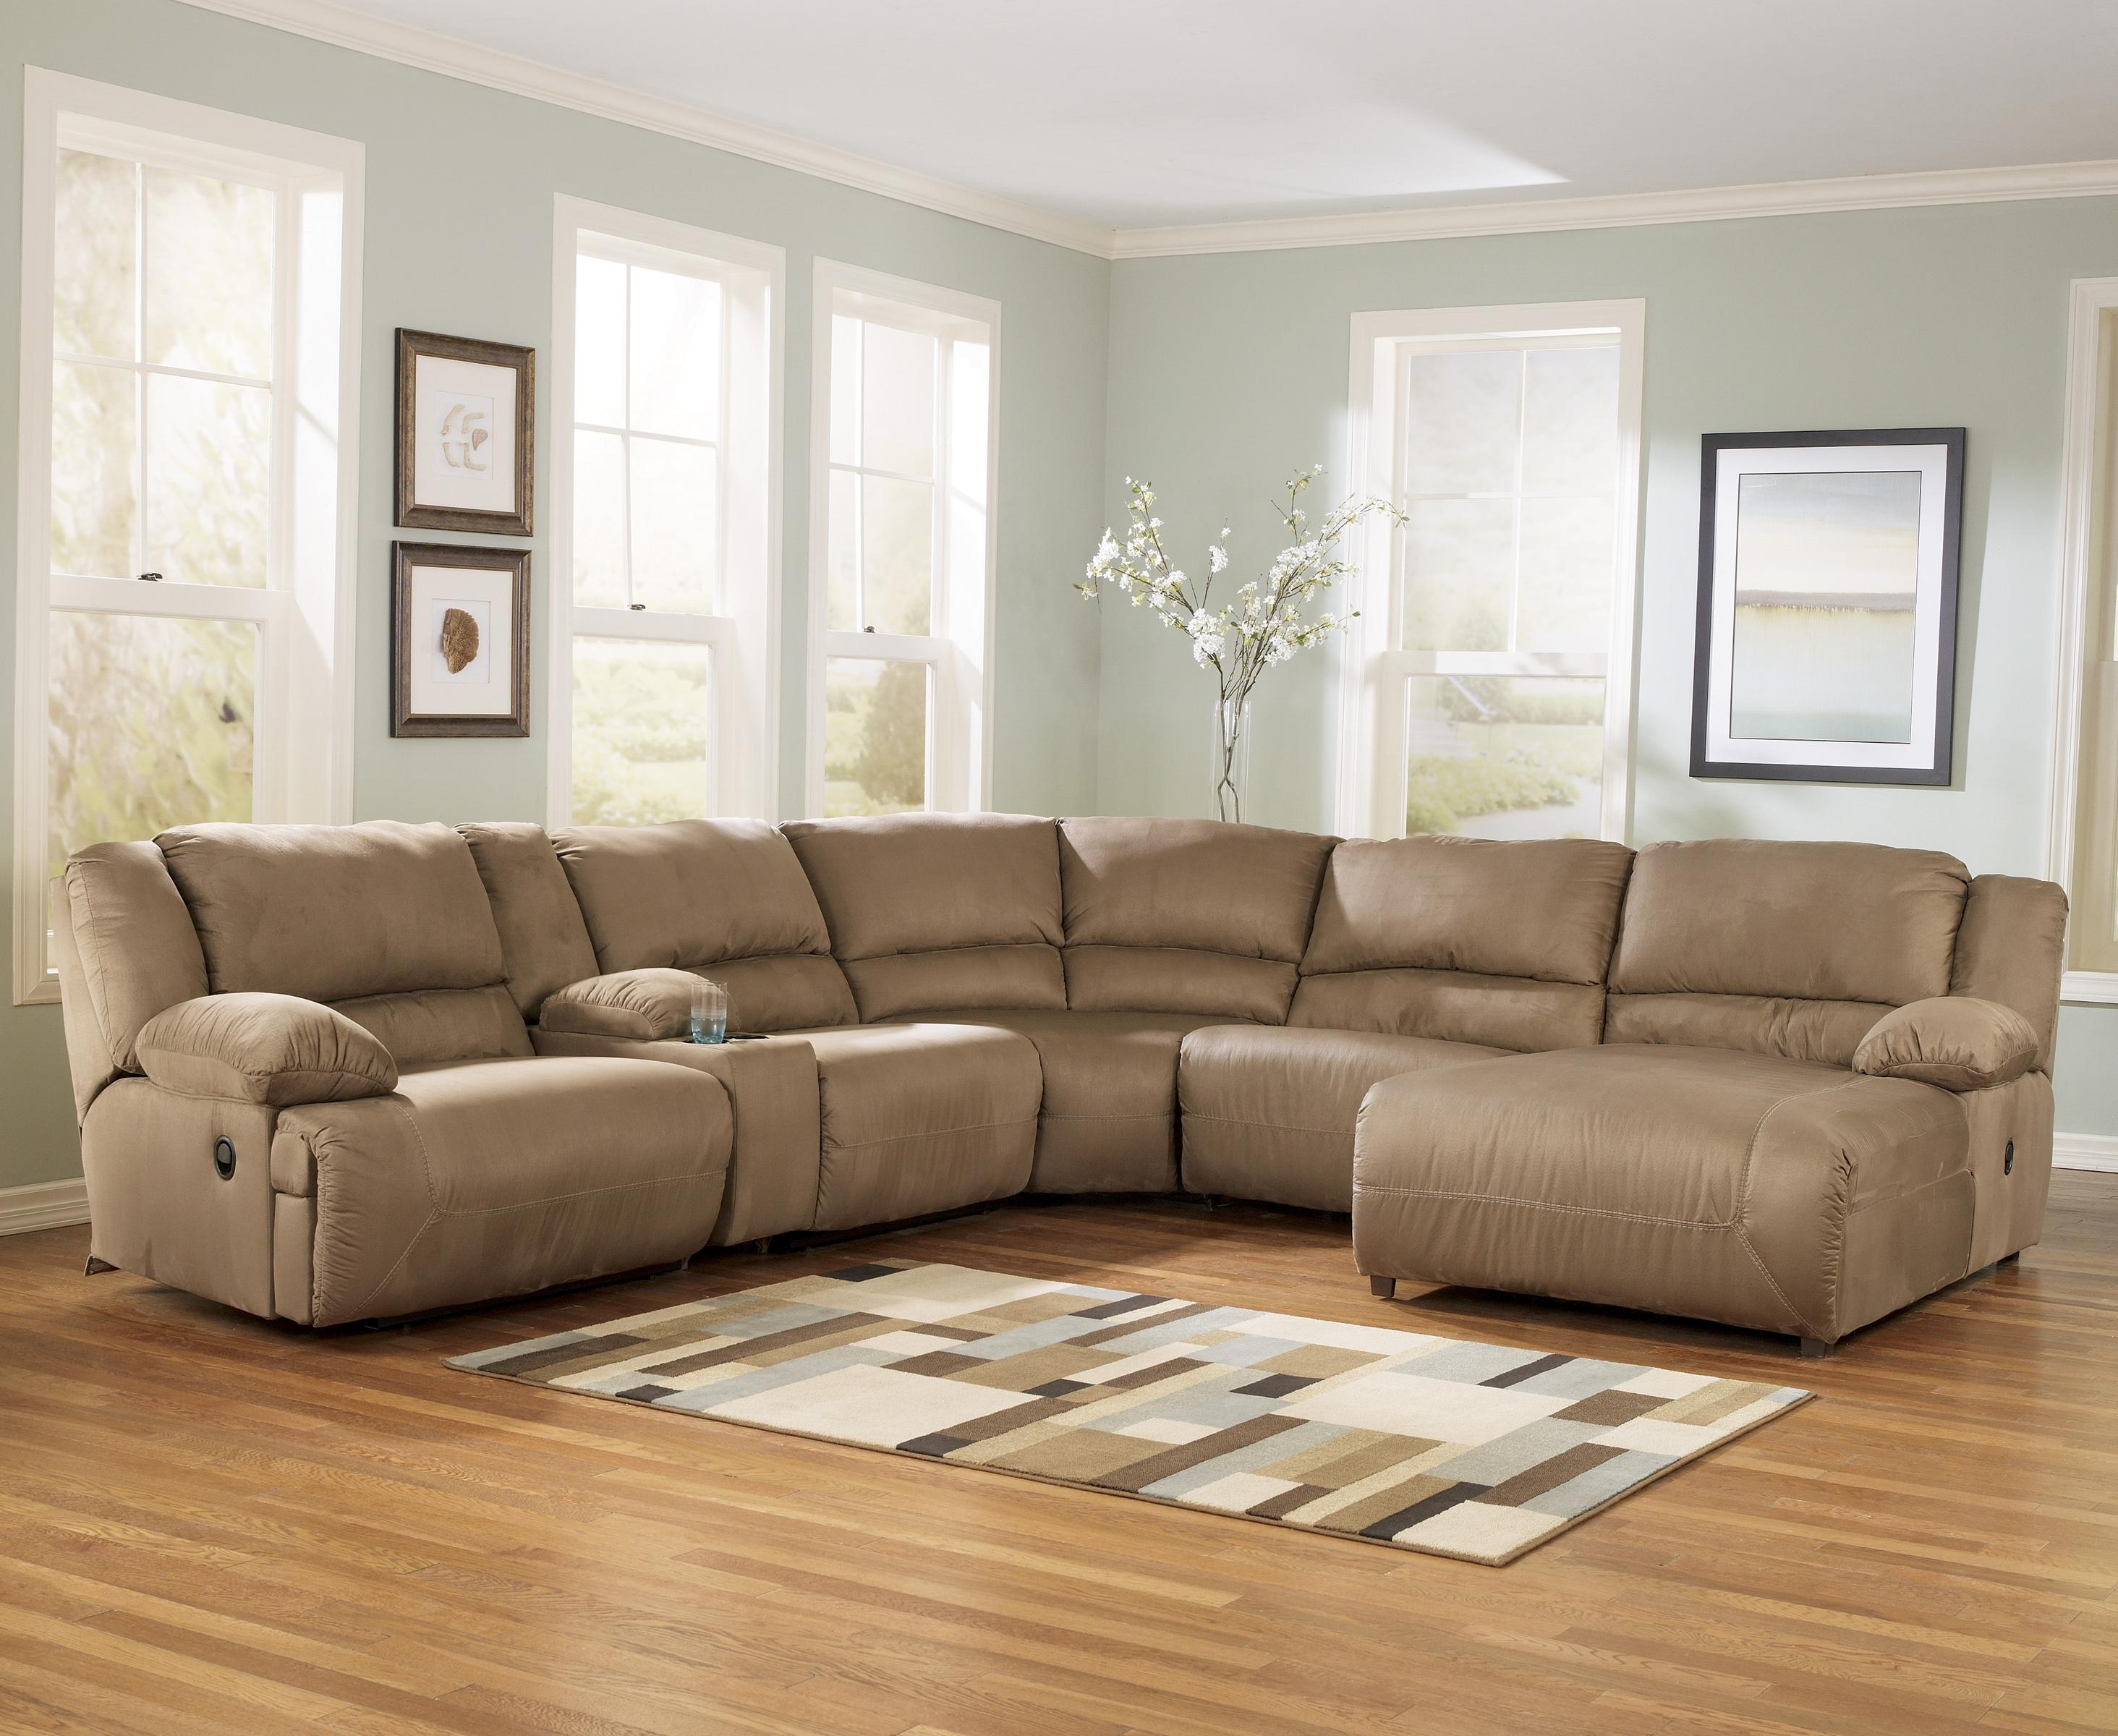 6 Piece Sectional Sofa - Ujecdent regarding Norfolk Grey 6 Piece Sectionals (Image 2 of 30)